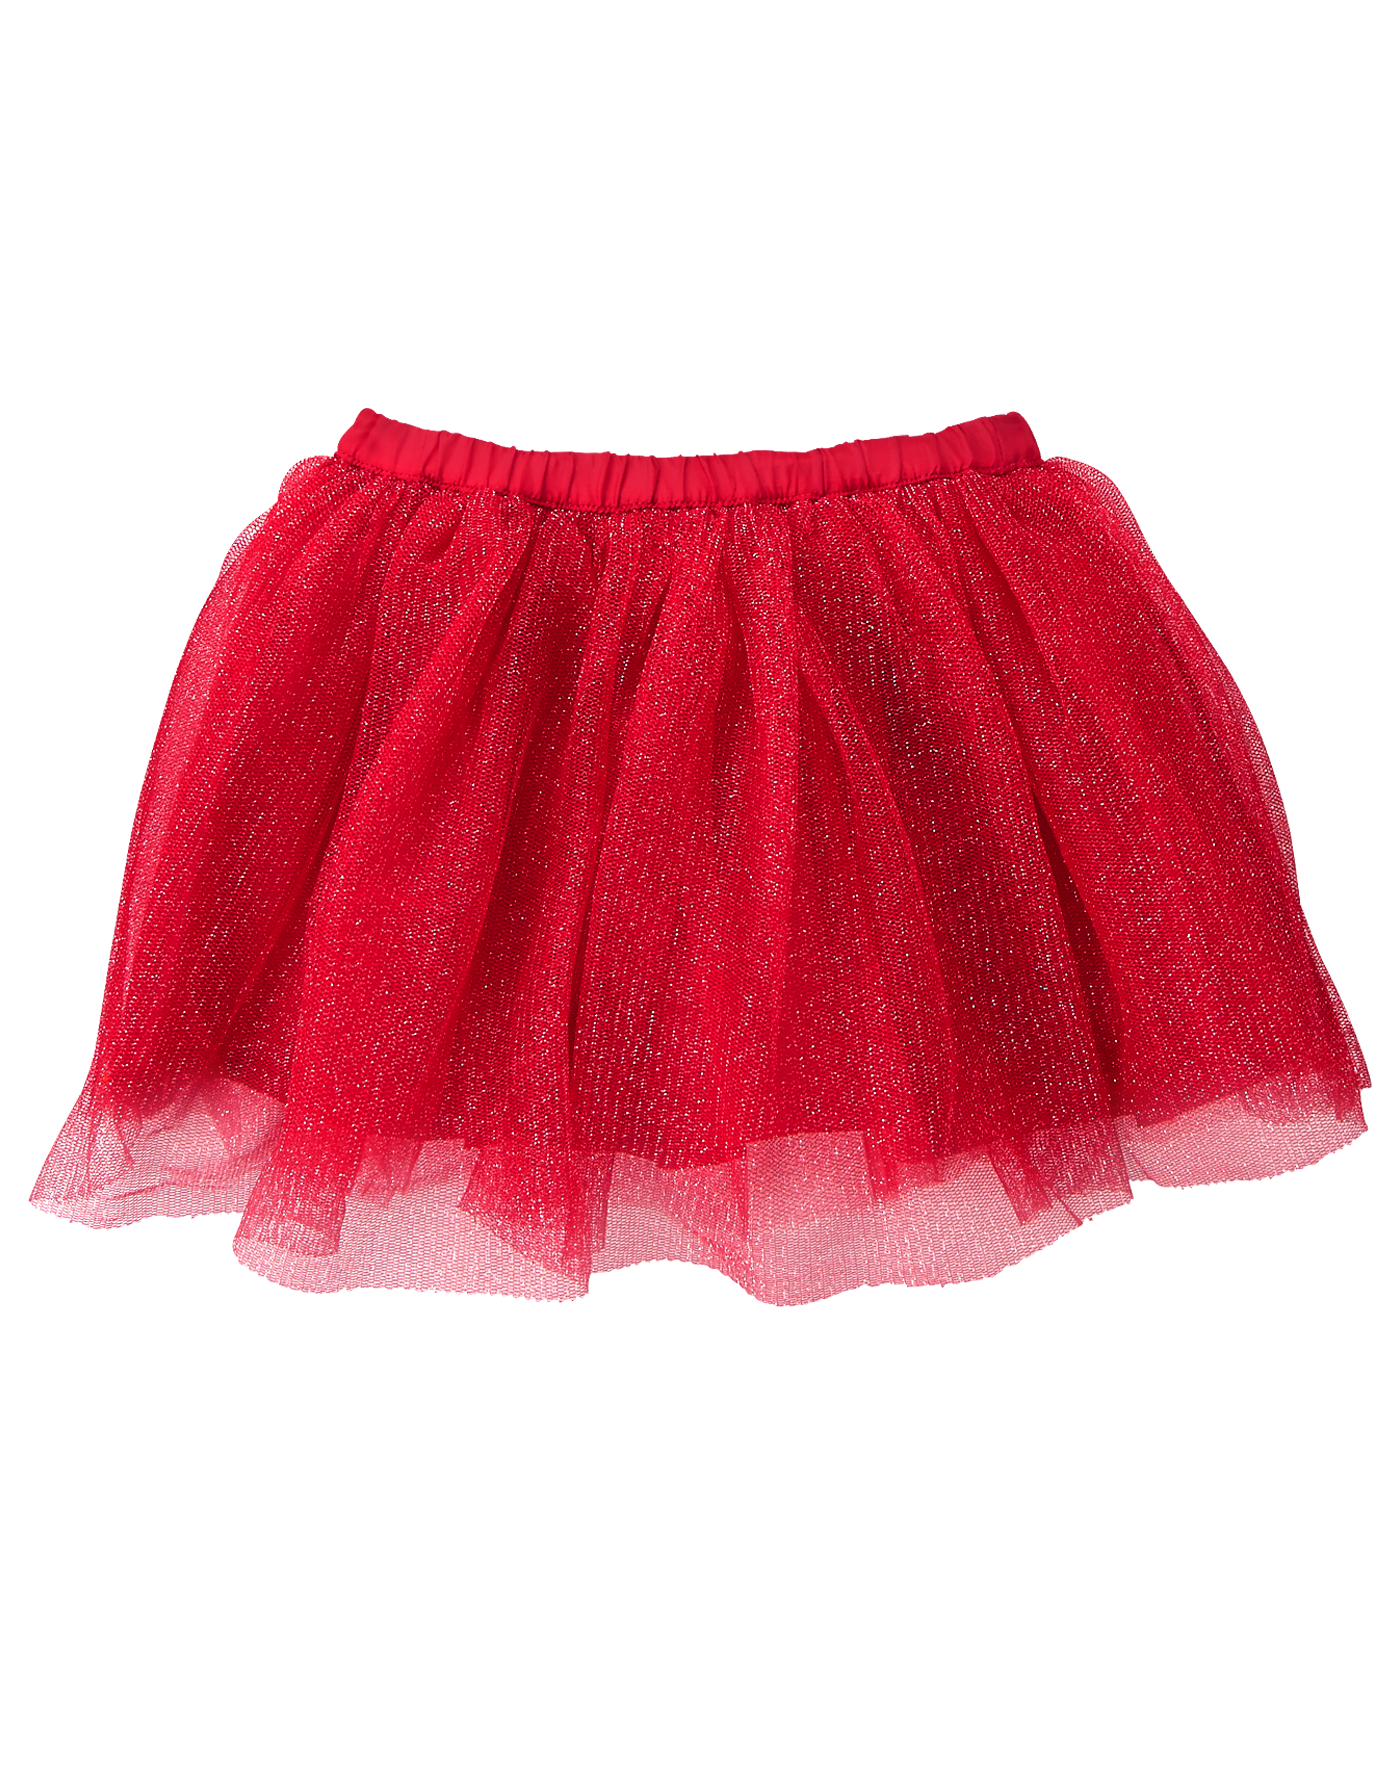 39ffcb5ffd Sparkle Tutu | 4th of July | Toddler girl outfits, Skirts, Toddler ...